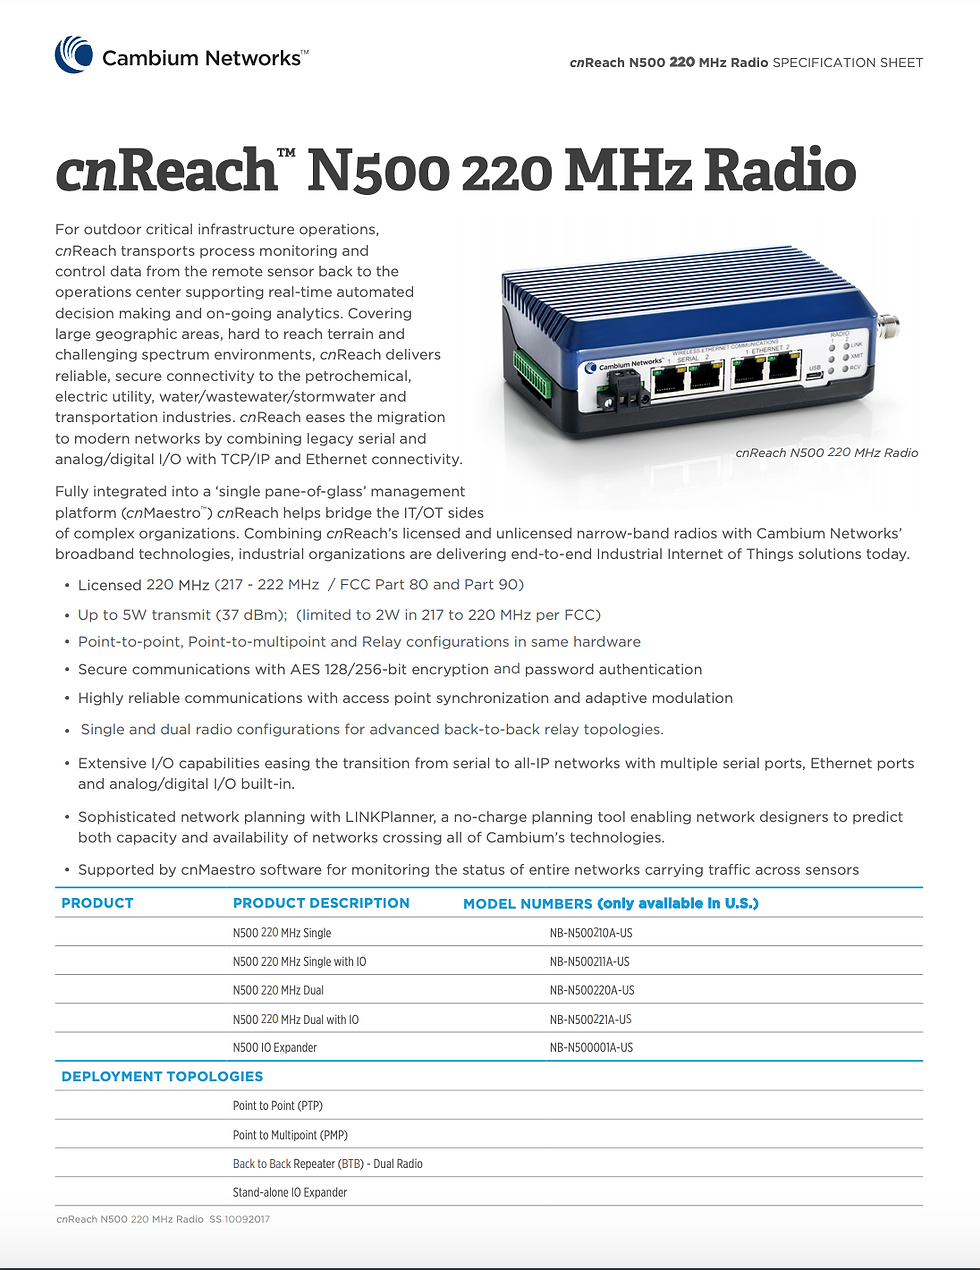 cnReach N500 220 MHz Specifications Sheet